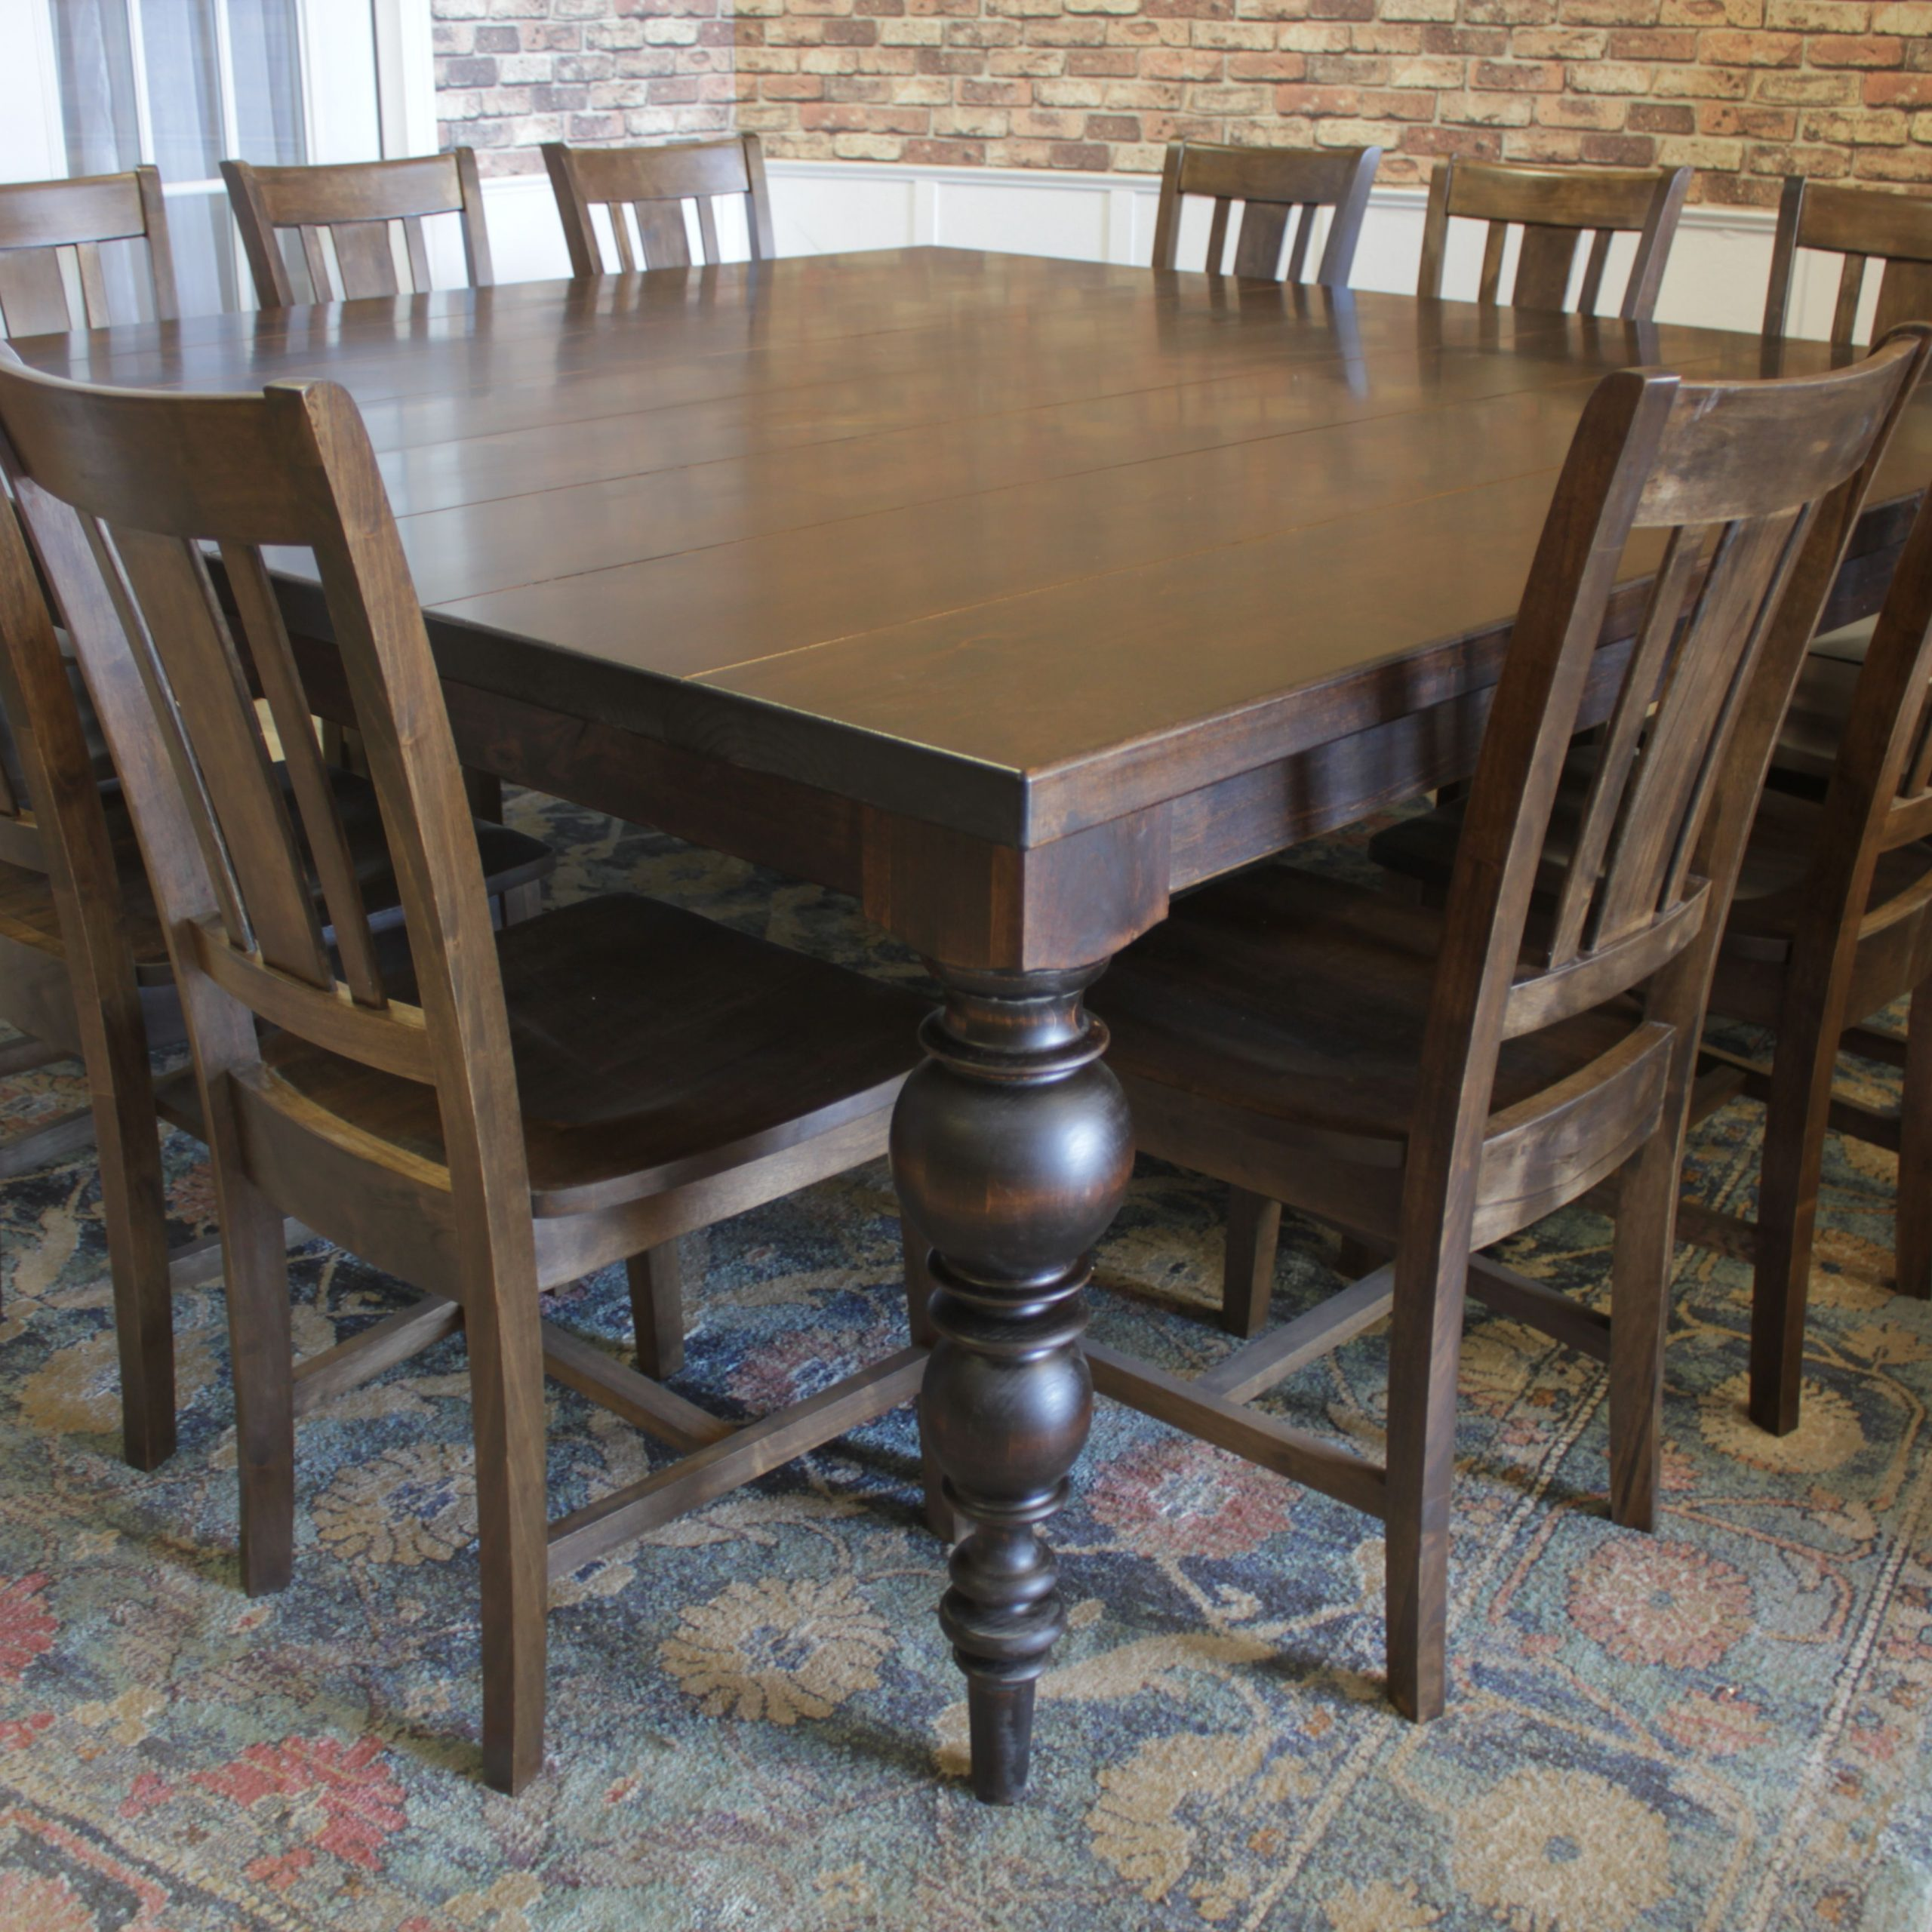 Large Rustic Look Dining Tables Throughout Fashionable This Large Square Dining Table For 12 Makes Entertaining (View 7 of 30)